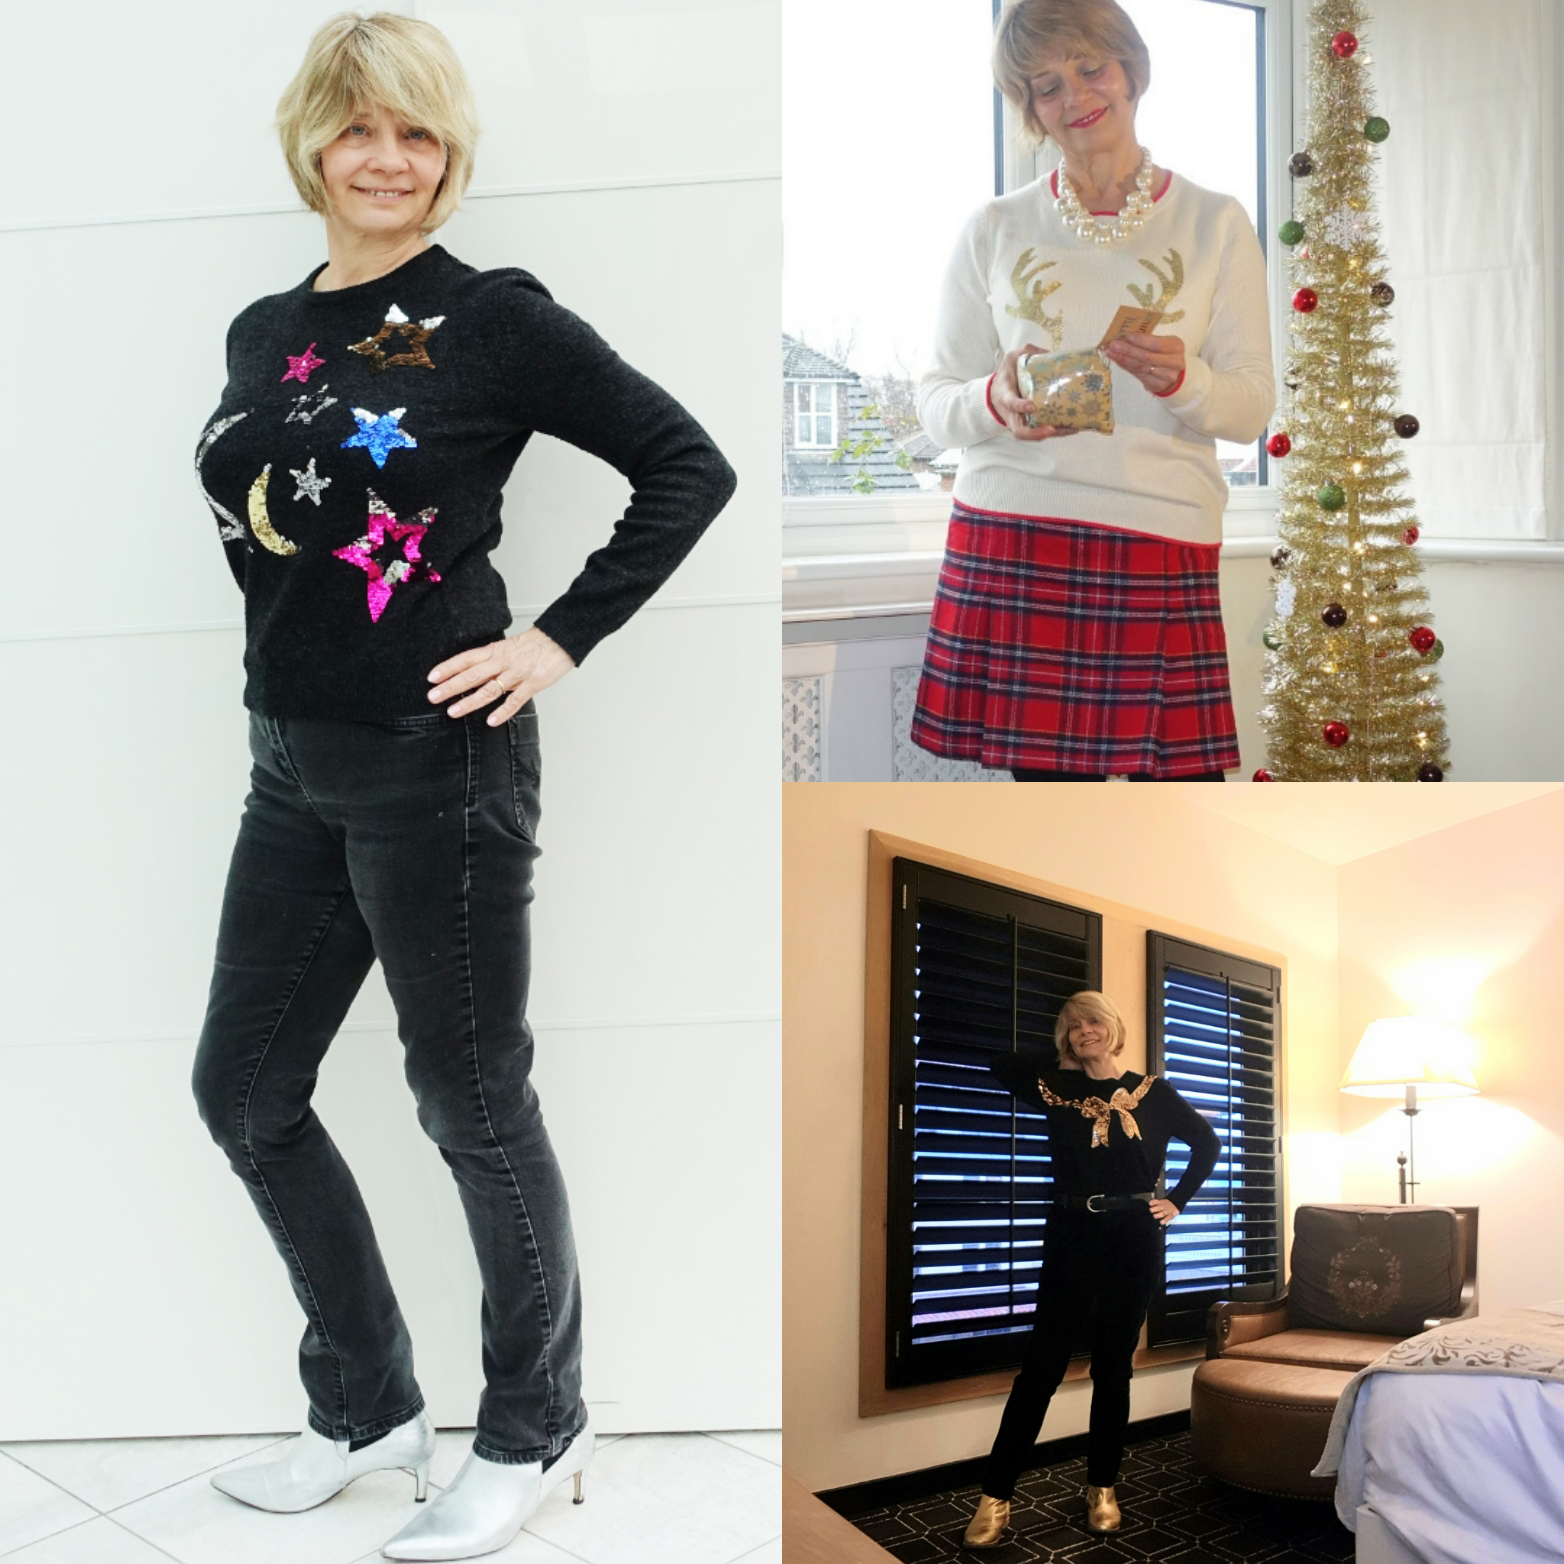 Is This Mutton blogger Gail Hanlon in thre differenr festive jumpers for Christmas